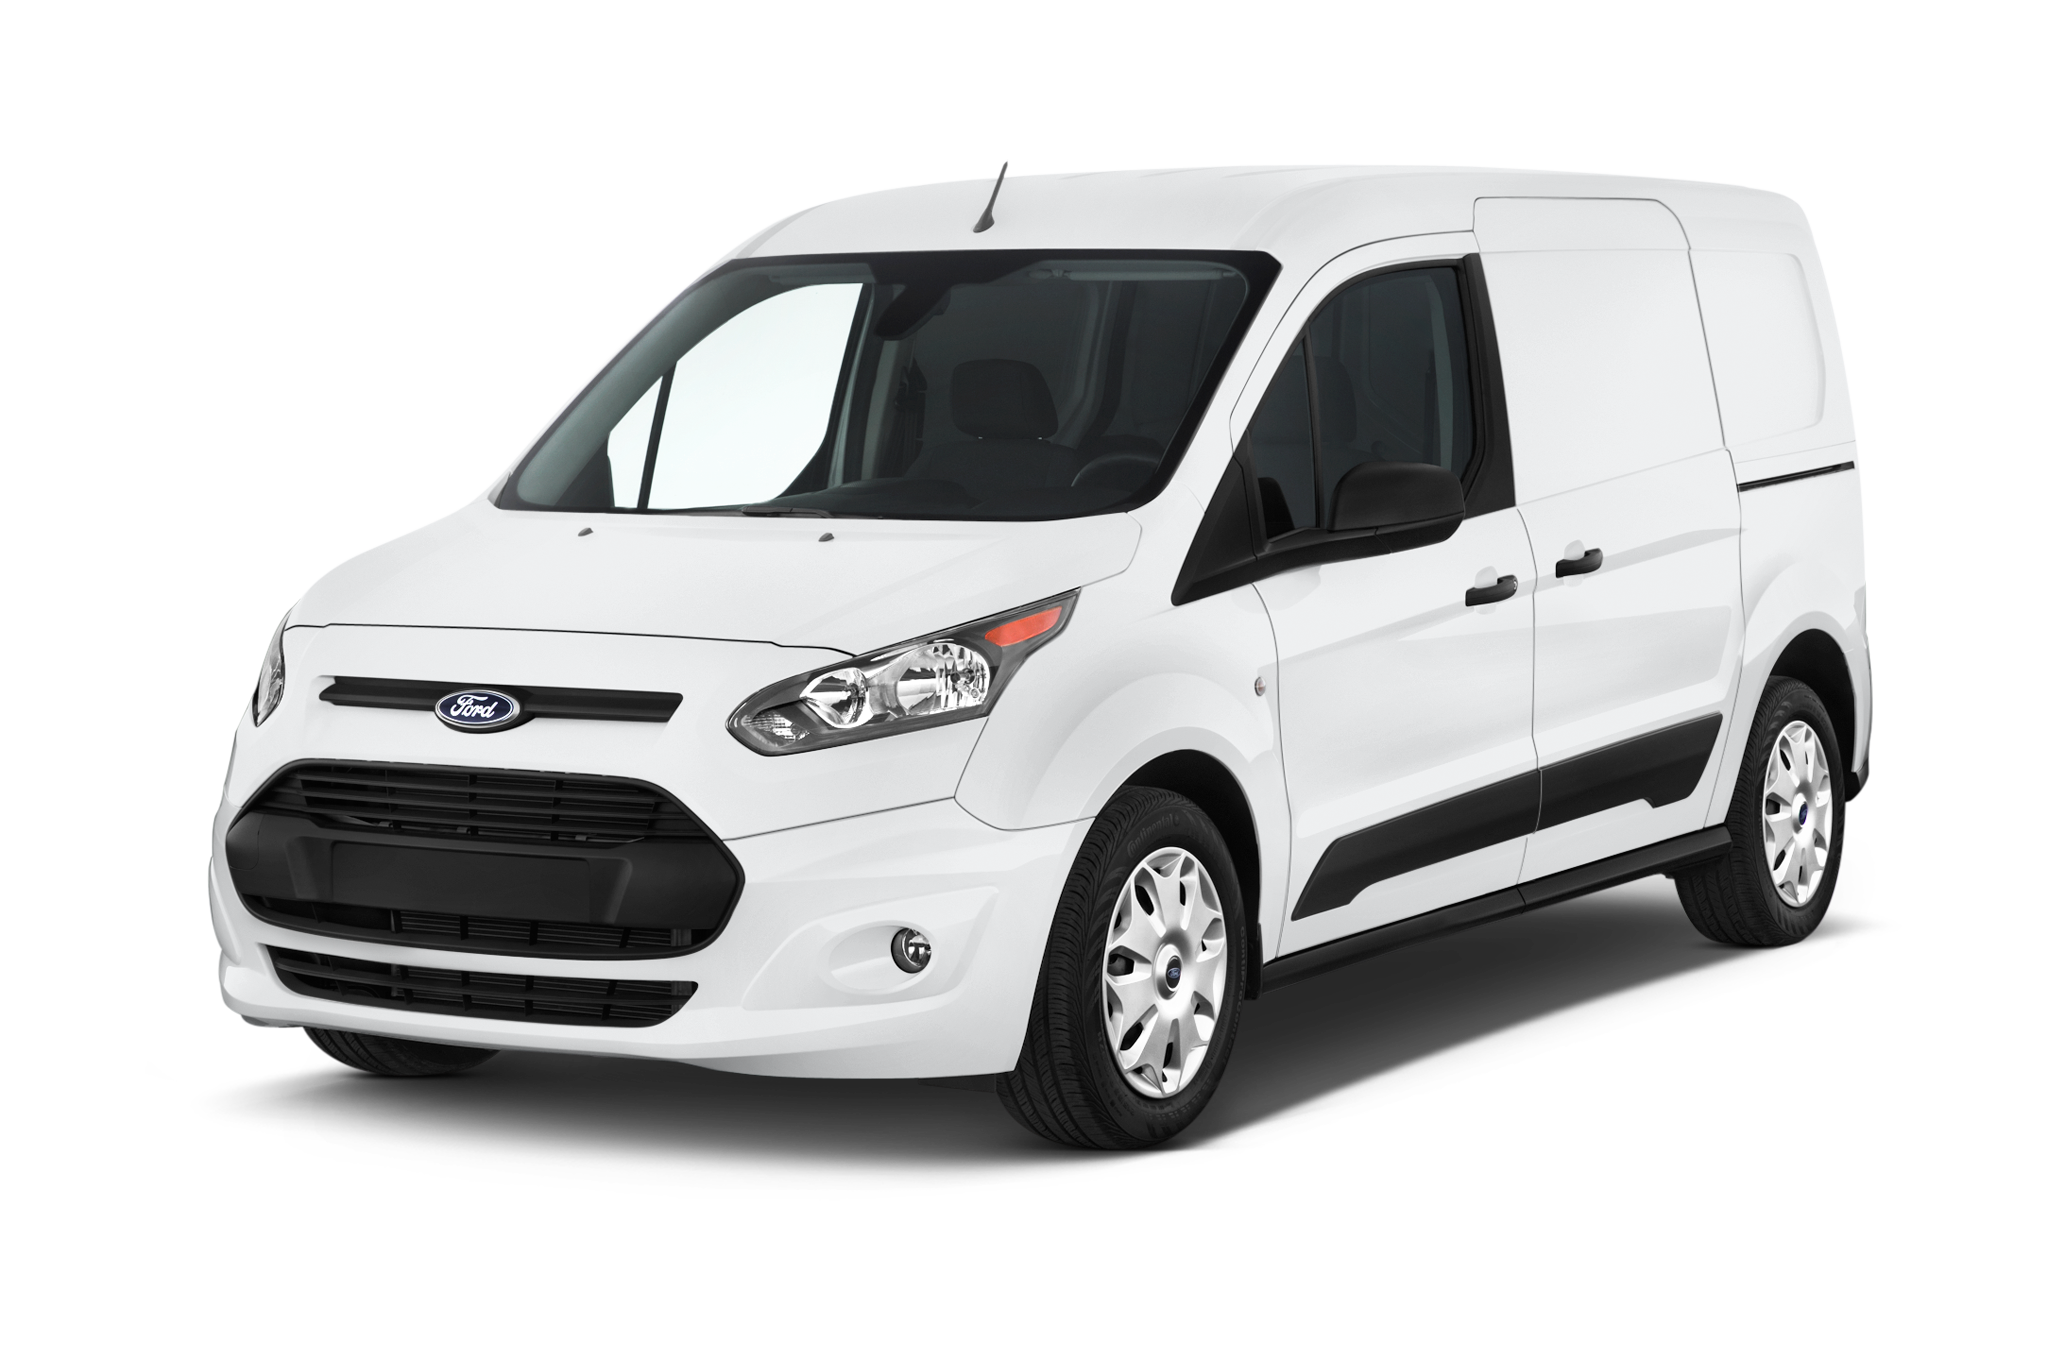 Ford Takes on the Chrysler Pacifica with an Updated Transit Connect